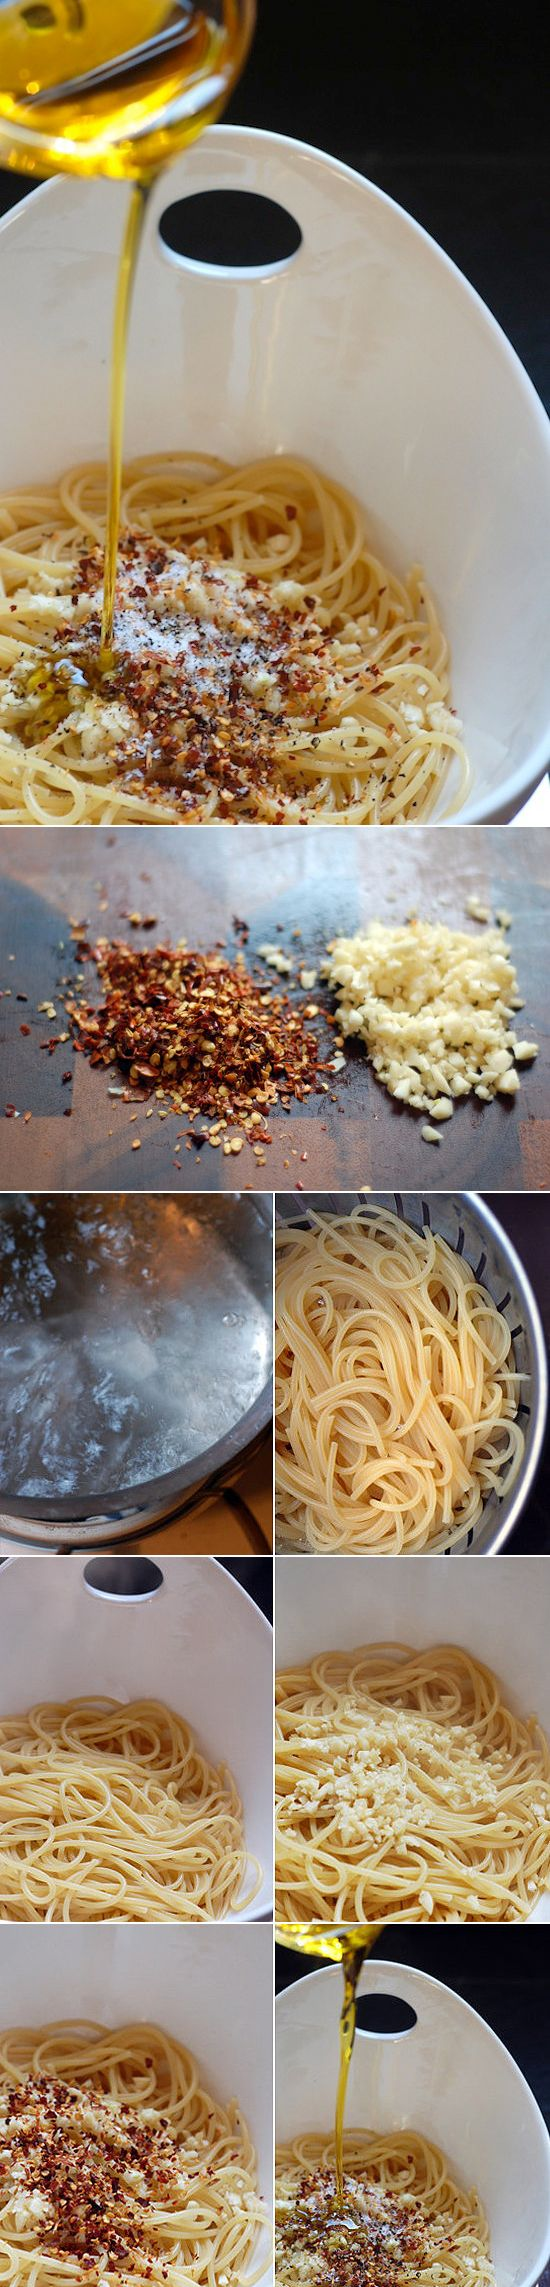 Spaghetti aglio, olio, e peperoncino is a traditional Italian pasta dish. It's well loved by many because it's so easy and inexpensive to make.